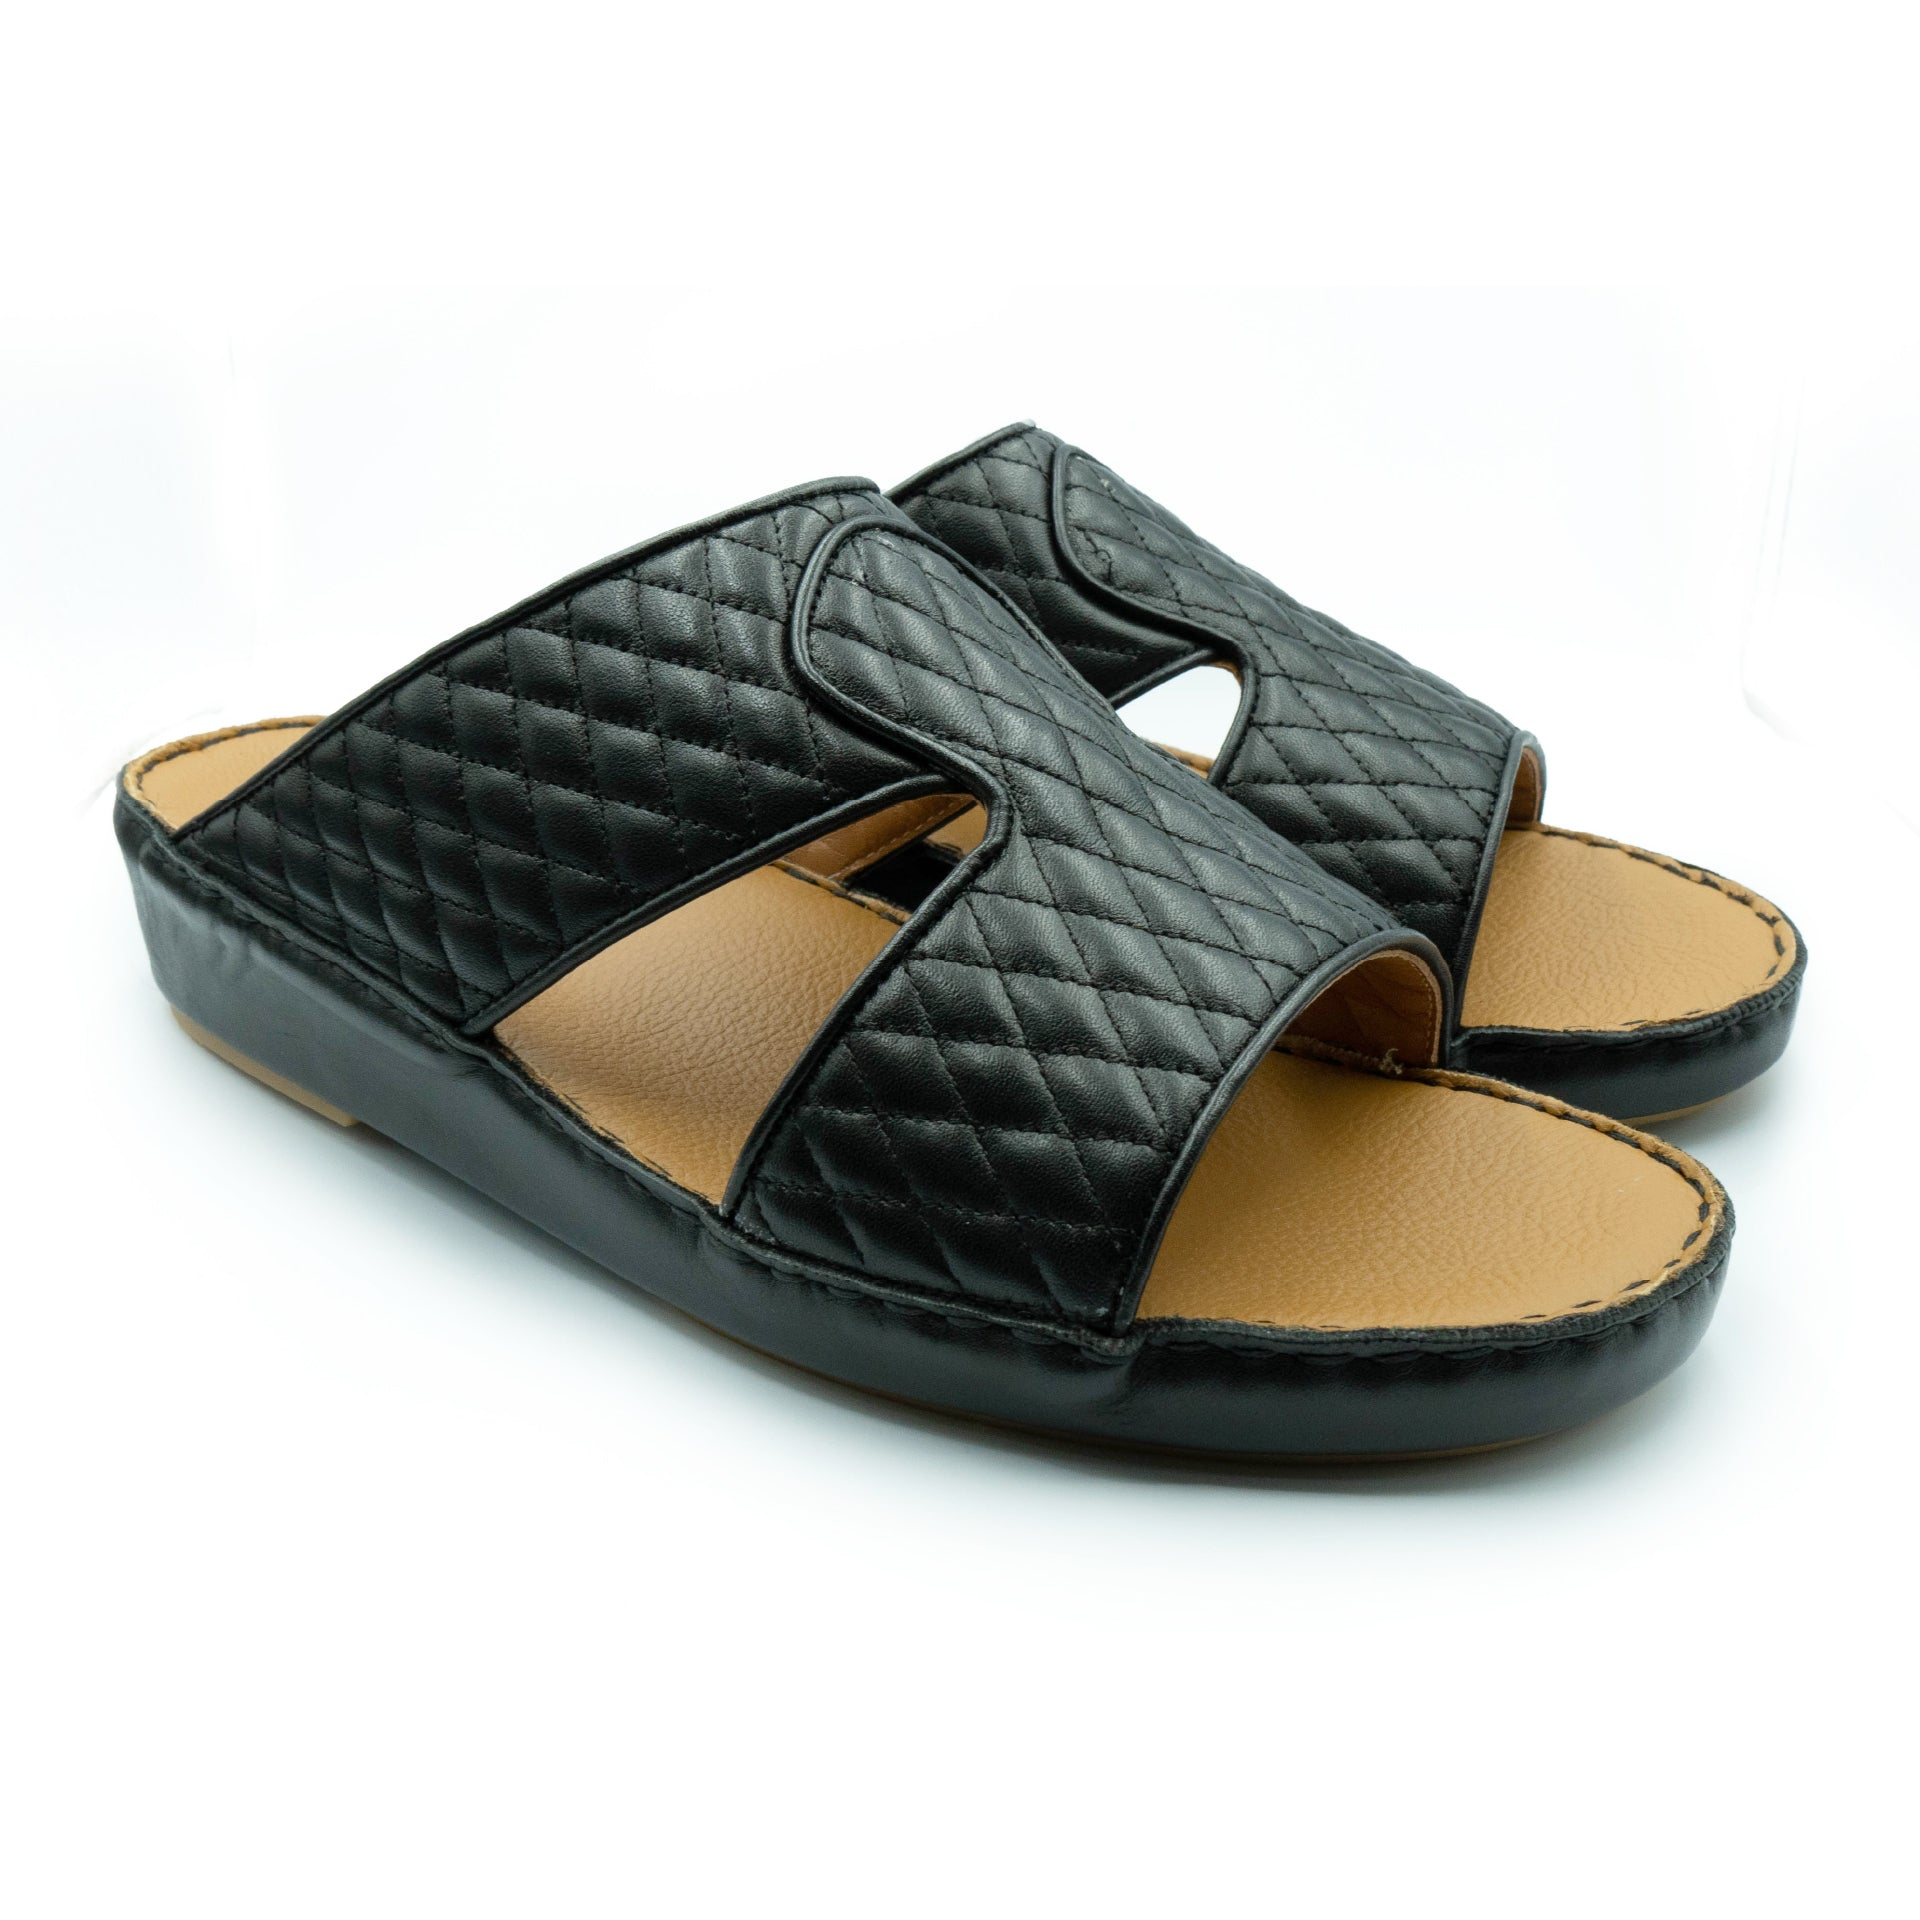 Arabic, Sandal, Ramadan, Collection, Accessories